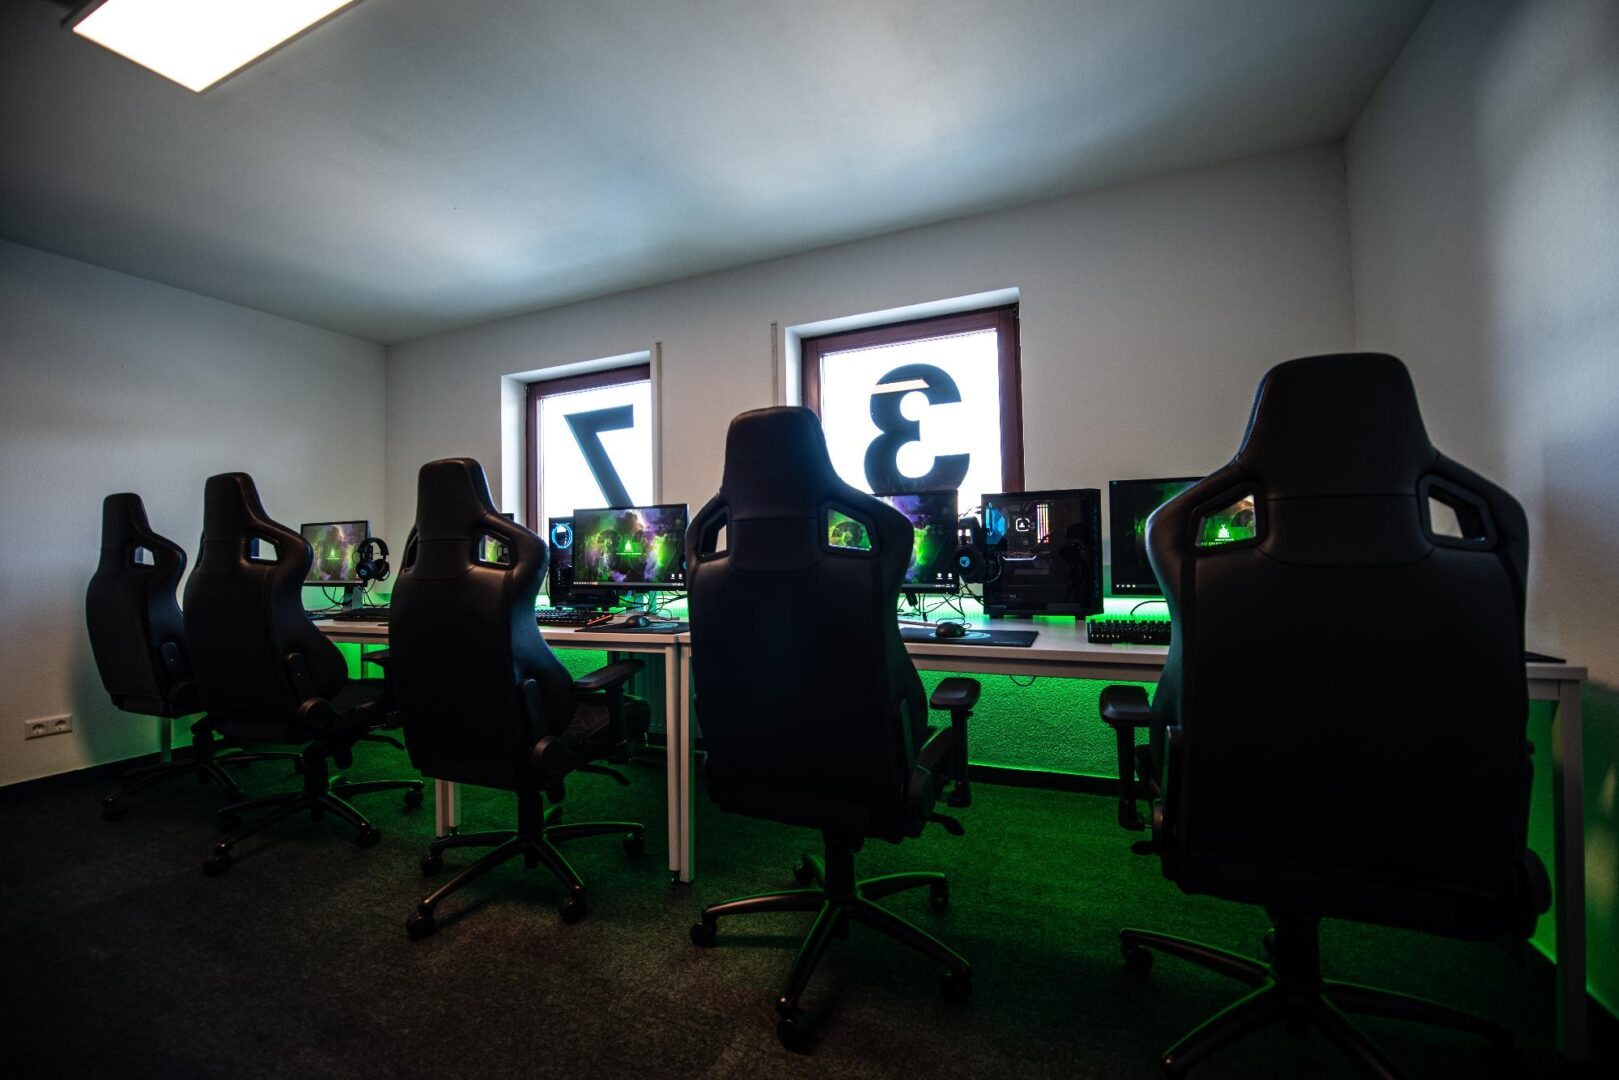 Teams, Clans and Organisations A location to meet, game, work & party. 24 and more ready to go gaming setups are waiting for you. We have consoles, a billard table and much more. Every event here will be an unforgettable by ELLA DON